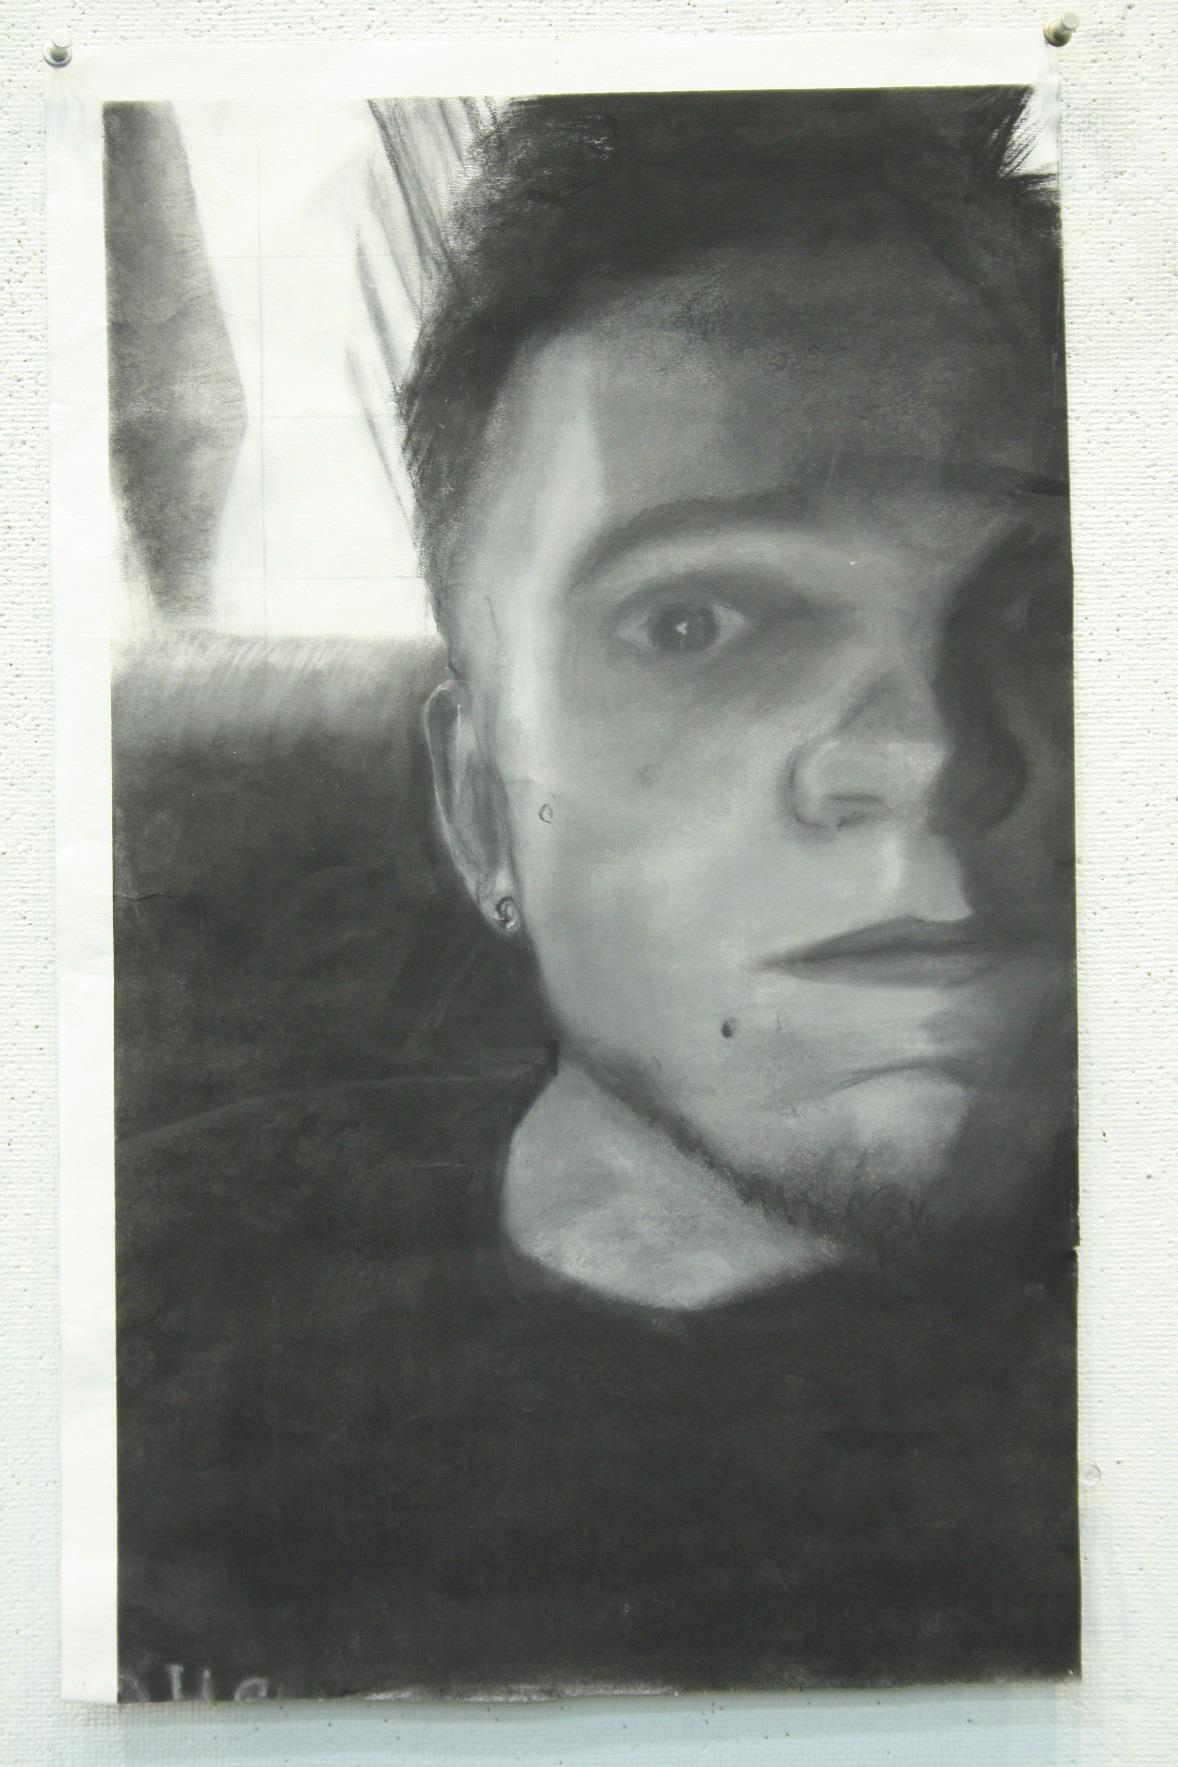 Self Portrait chalk drawing by Joe Bartkowiak